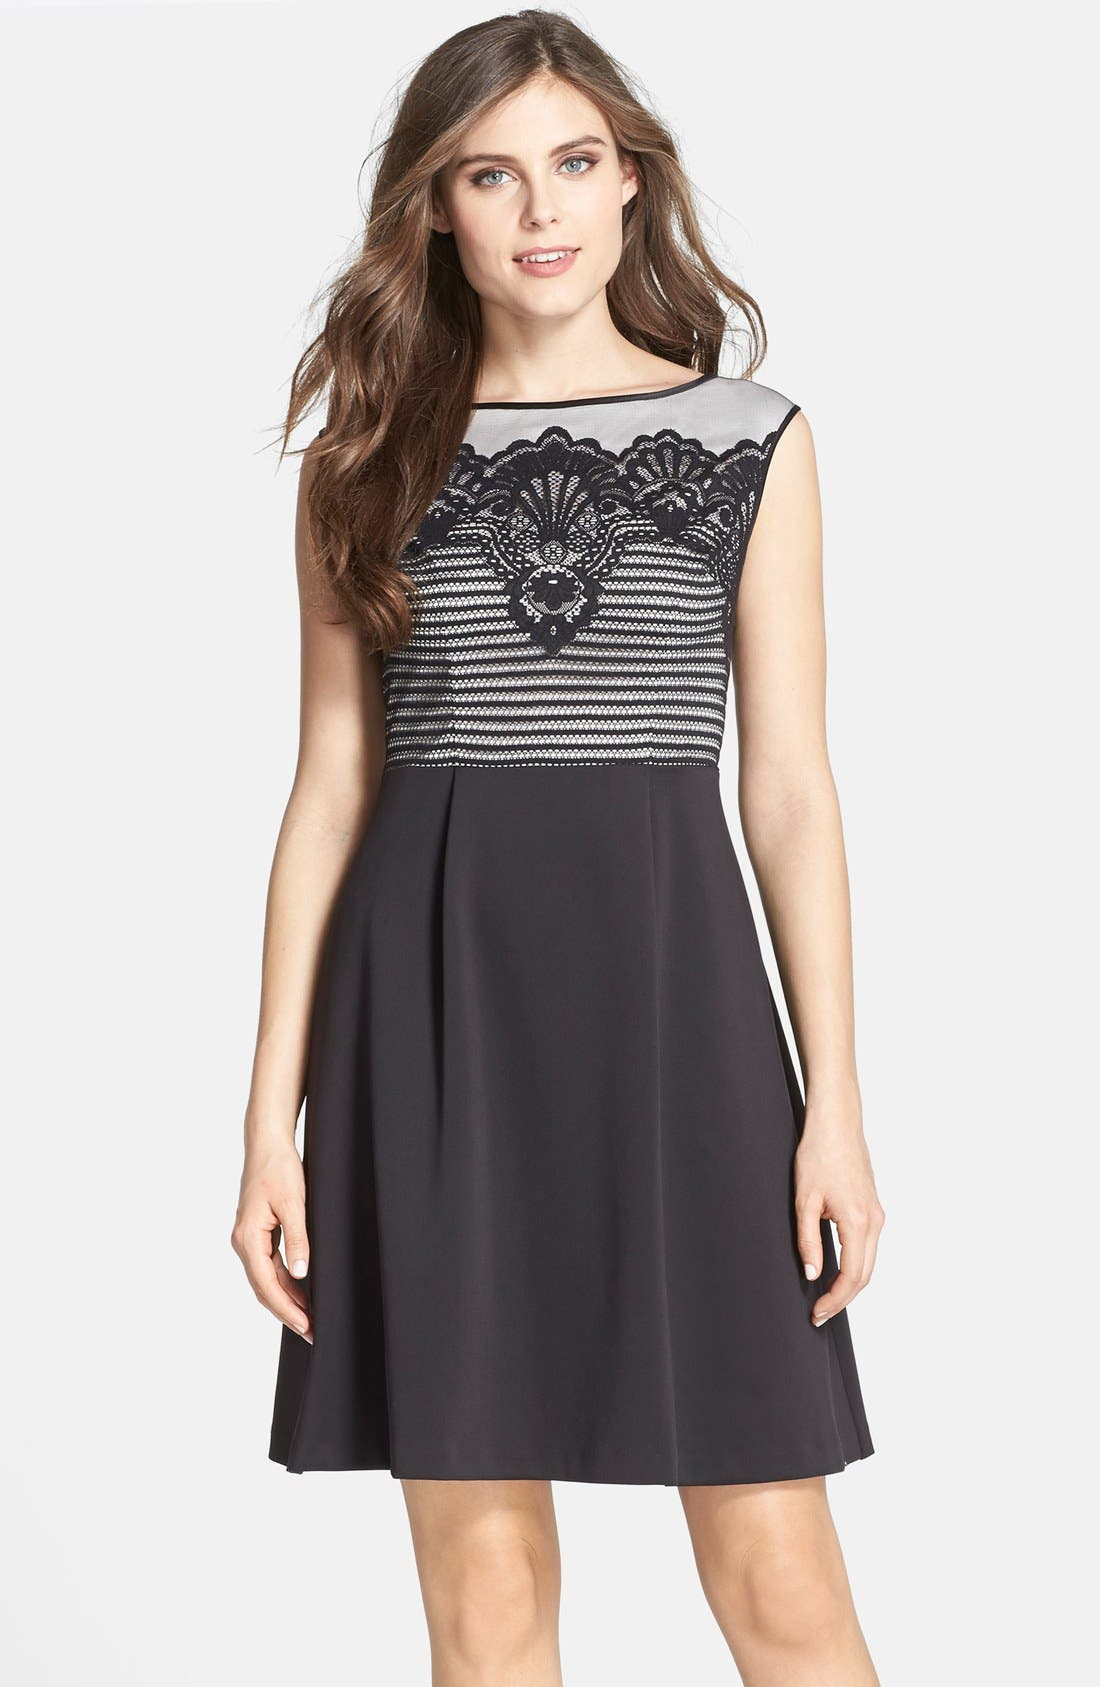 Alternate Image 1 Selected - Adrianna Papell Lace Overlay Fit & Flare Dress